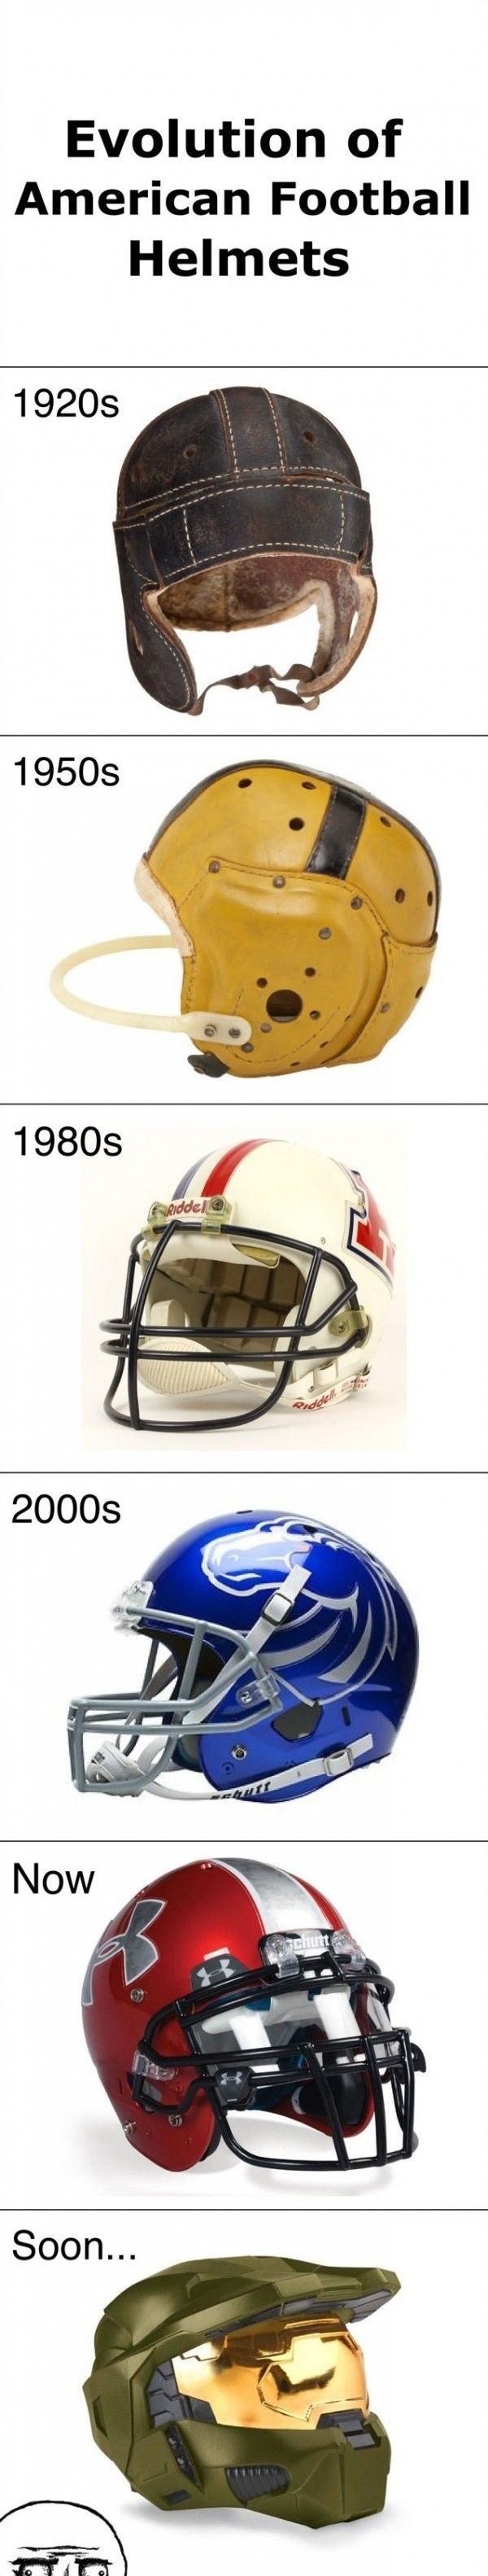 Evolution of football helmets - www.meme-lol.com